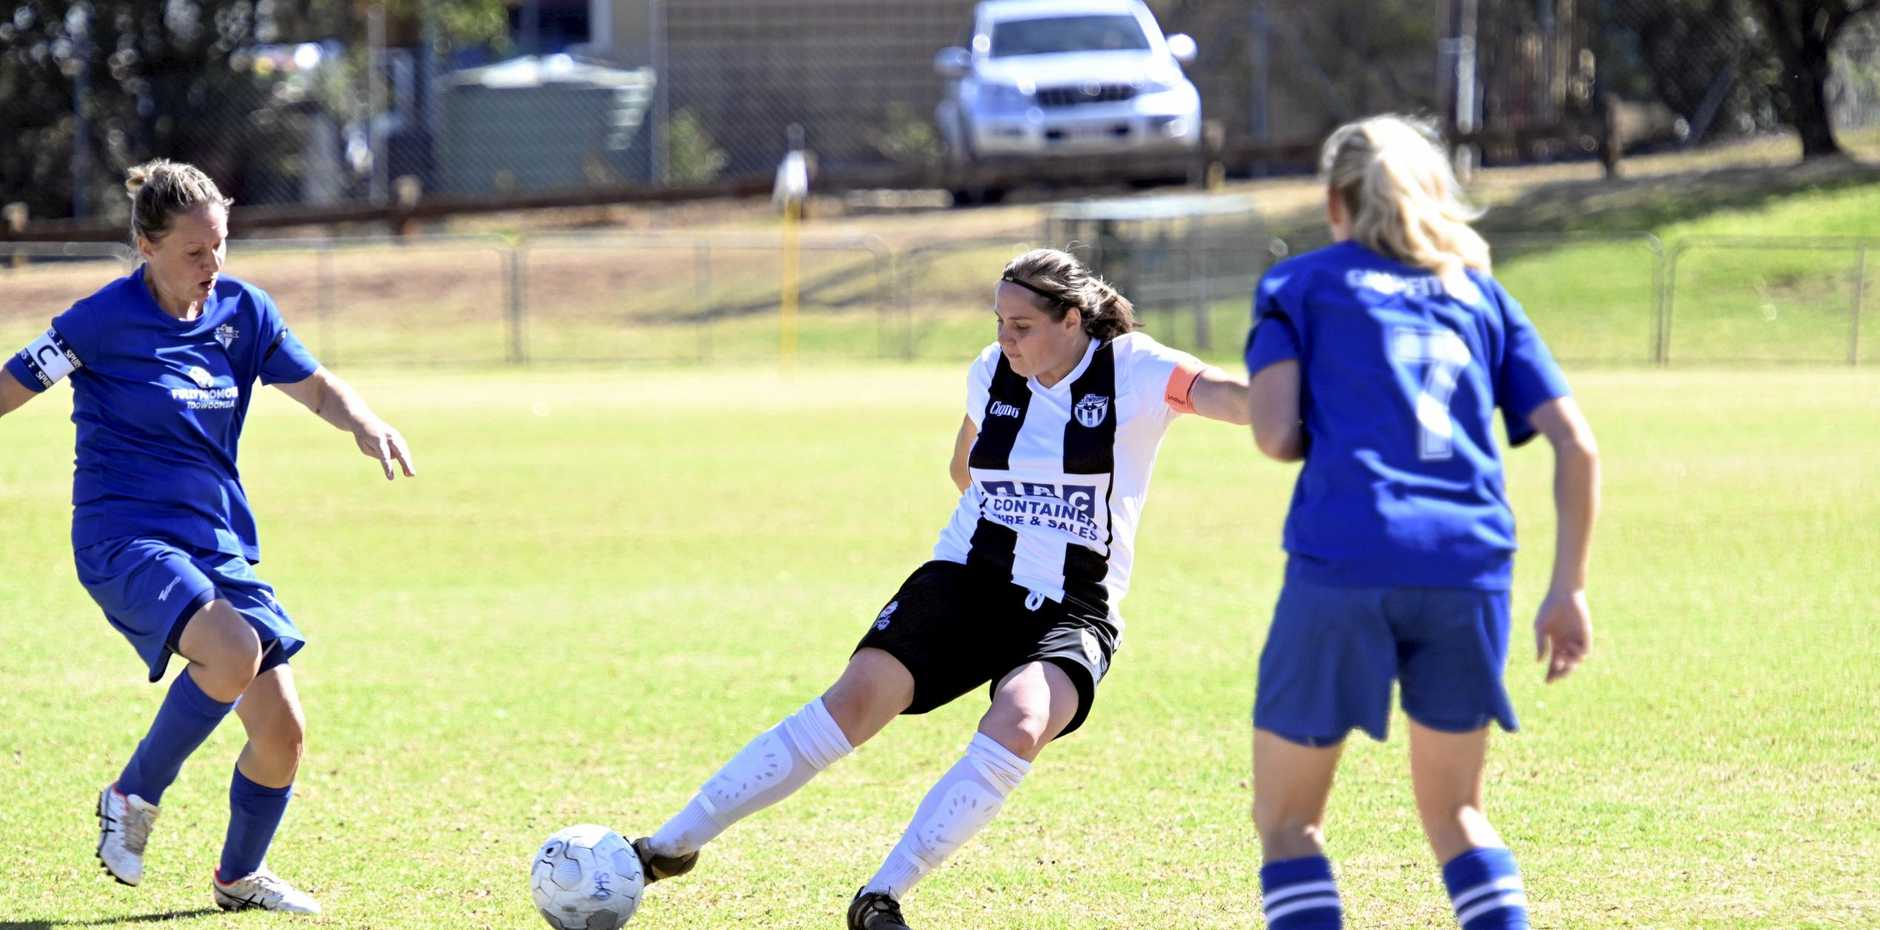 Goal score Kiarna Gray.  Willowburn : . Rockville vs Willowburn. Toowoomba Football, Commonwealth Oval. Women soccer. September 2019